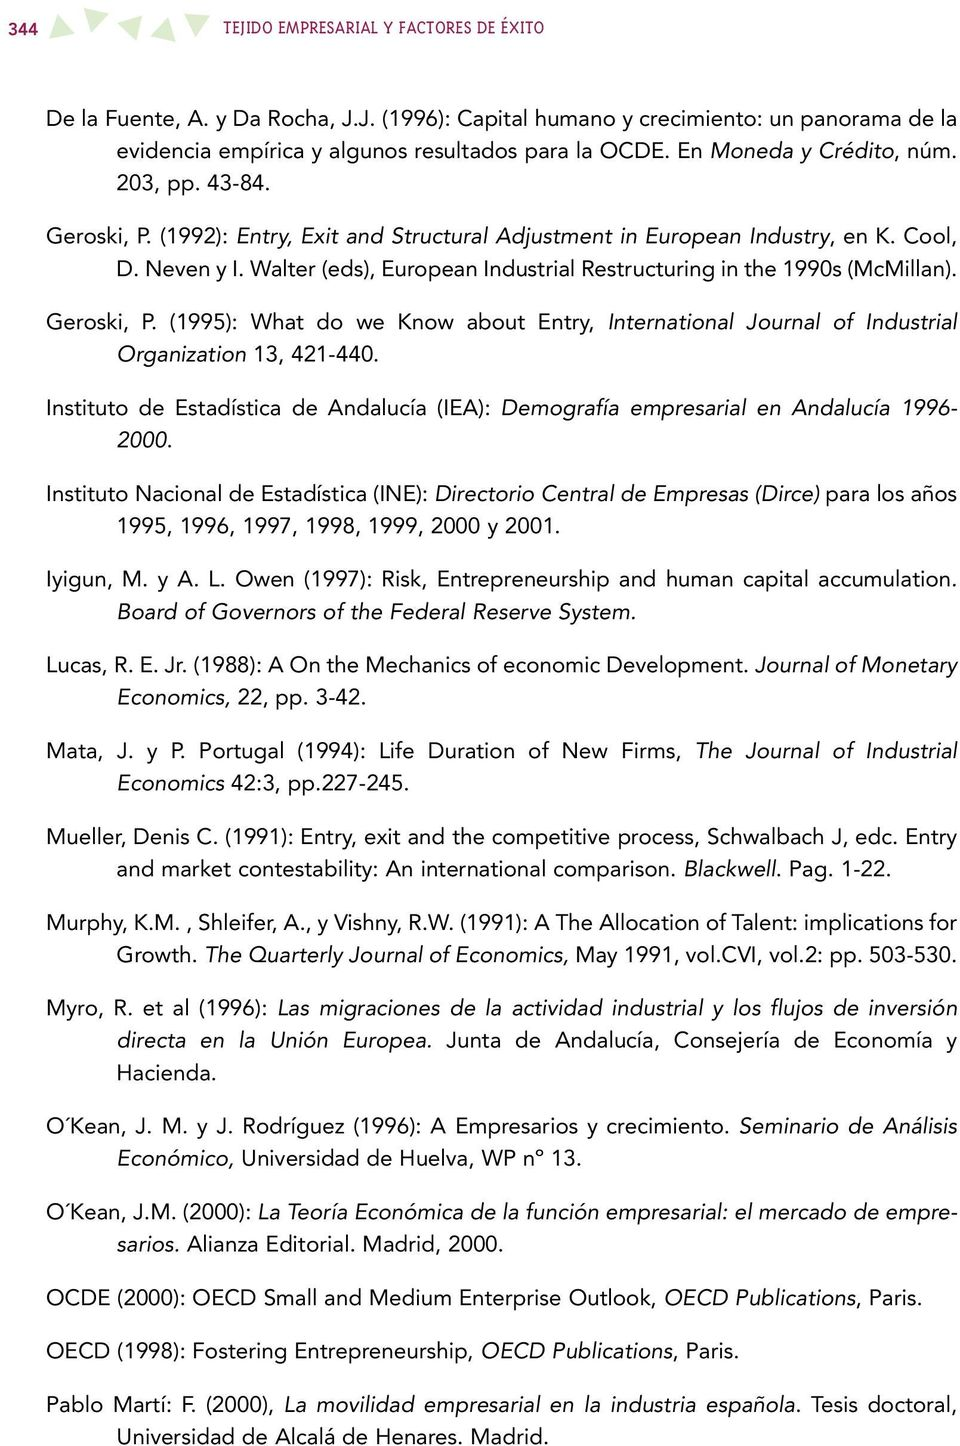 Walter (eds), European Industrial Restructuring in the 1990s (McMillan). Geroski, P. (1995): What do we Know about Entry, International Journal of Industrial Organization 13, 421-440.